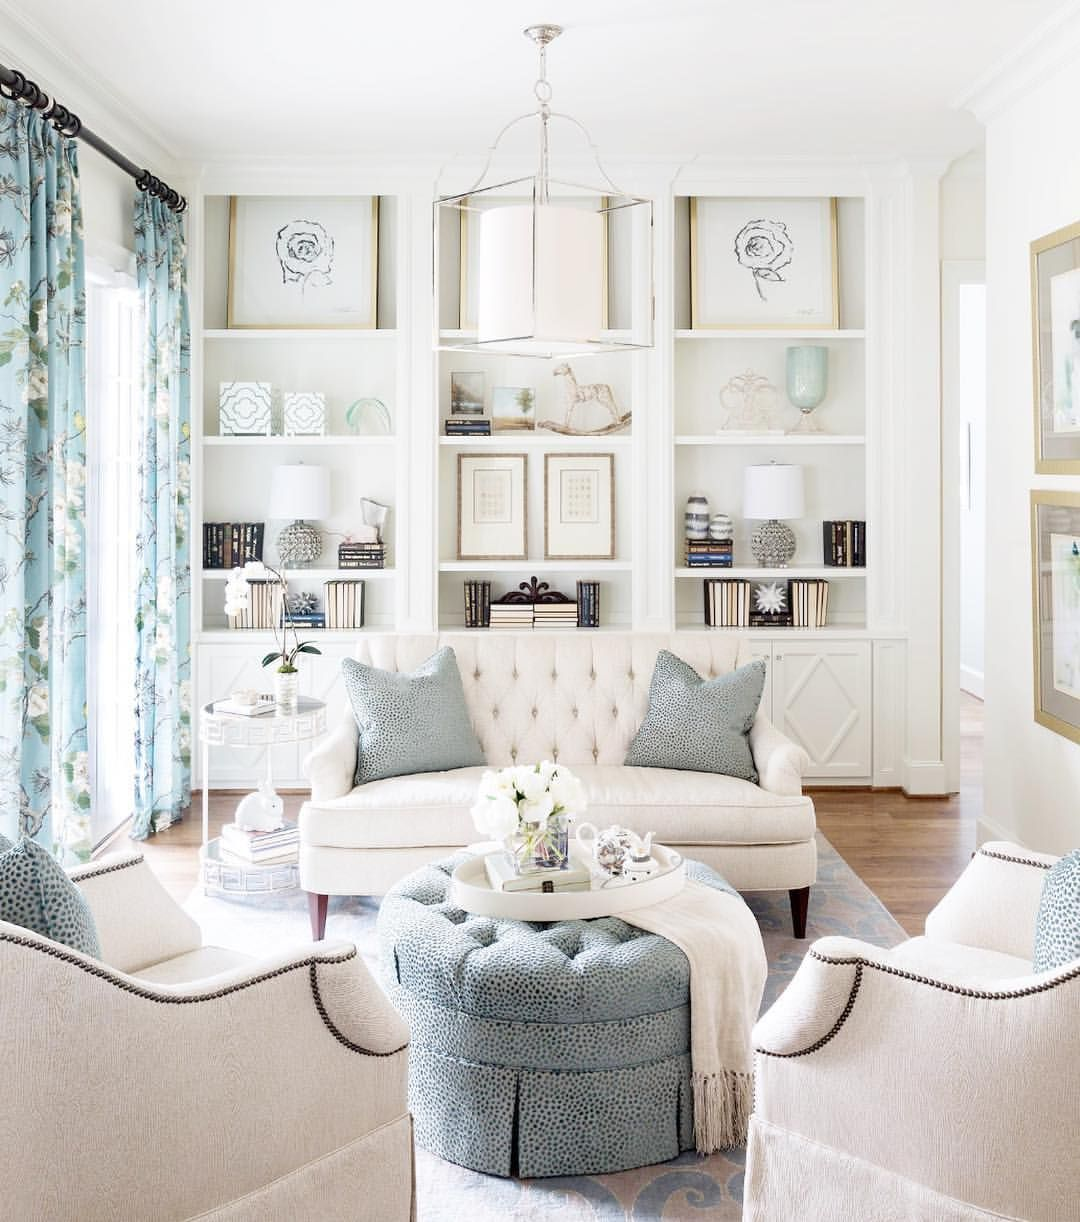 Living room seating area   Decor   Pinterest   Living rooms, Room ...